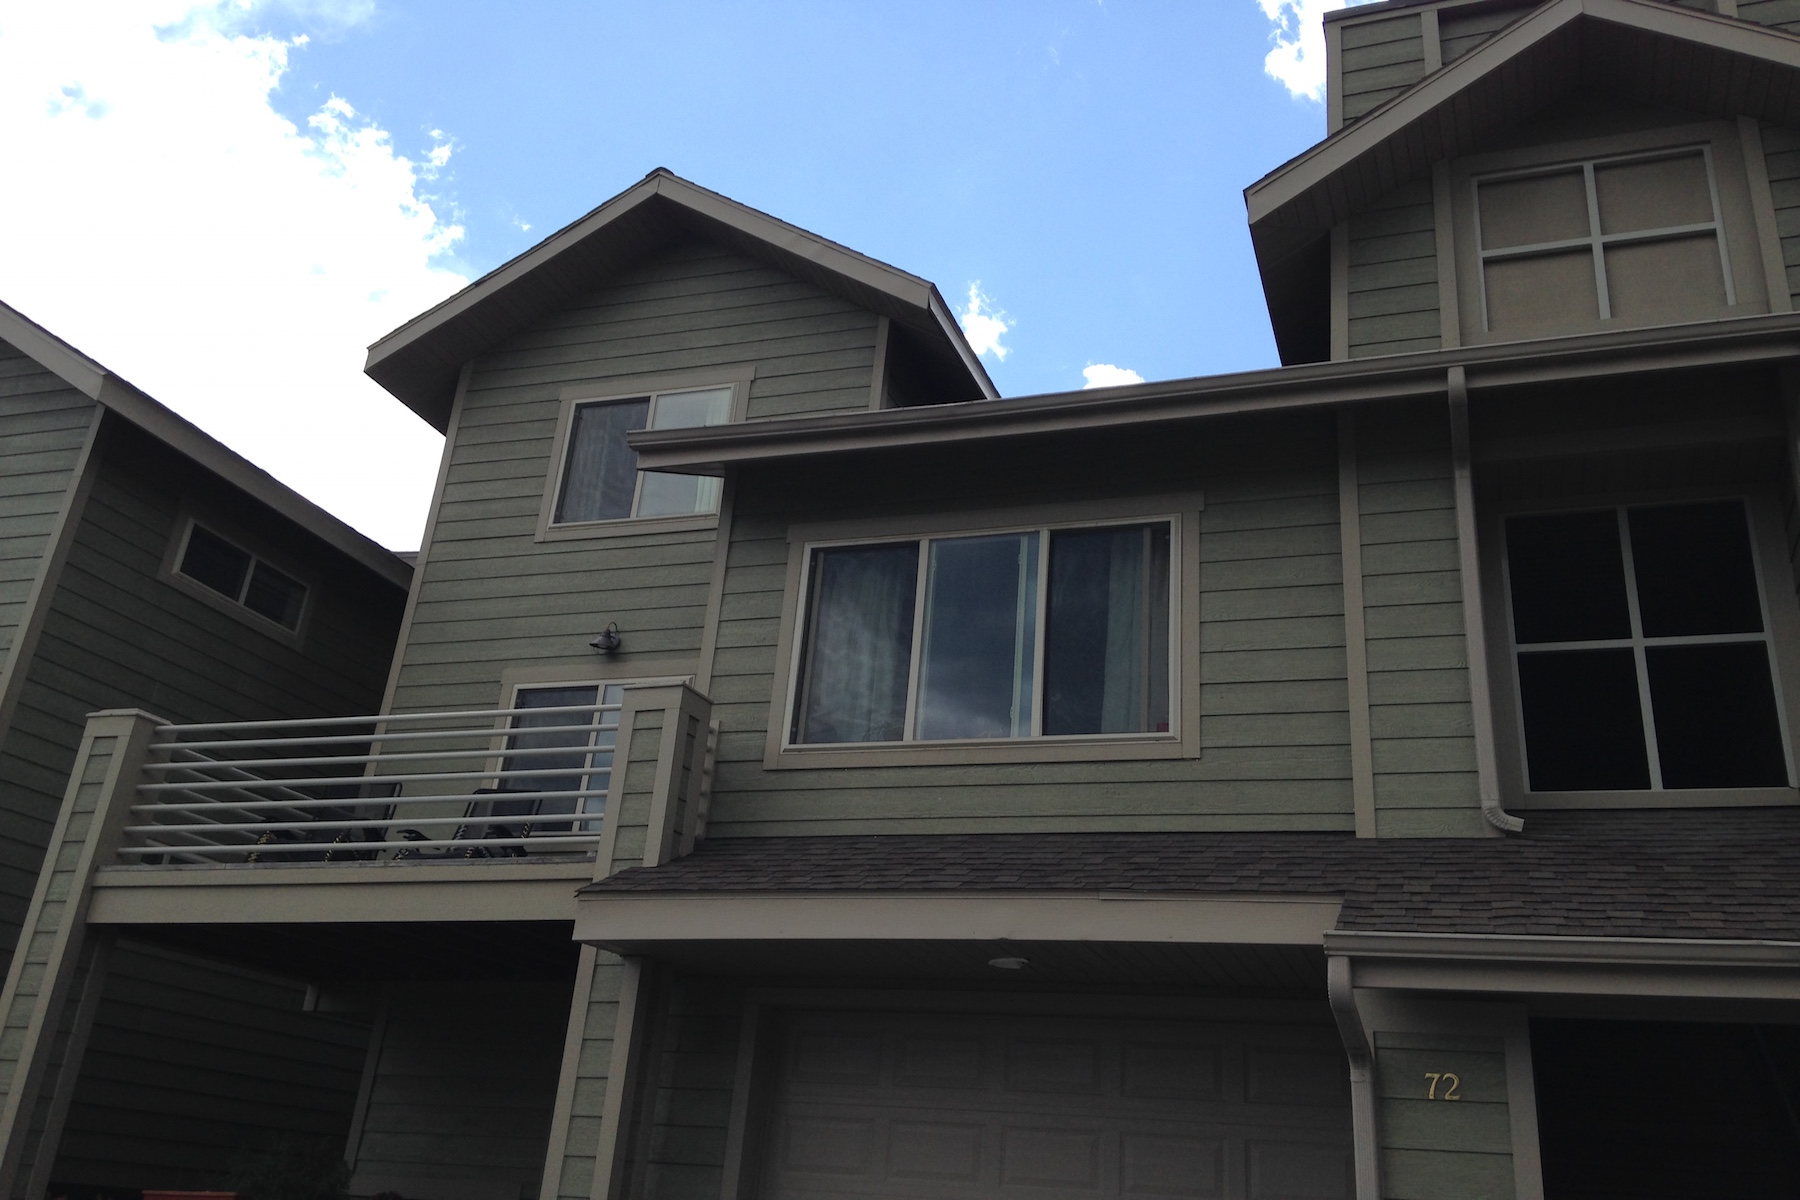 Condominio por un Venta en Deer Run Condominium 72 Blacktail Buck Drive, Deer Run D-1 Big Sky, Montana 59716 Estados Unidos